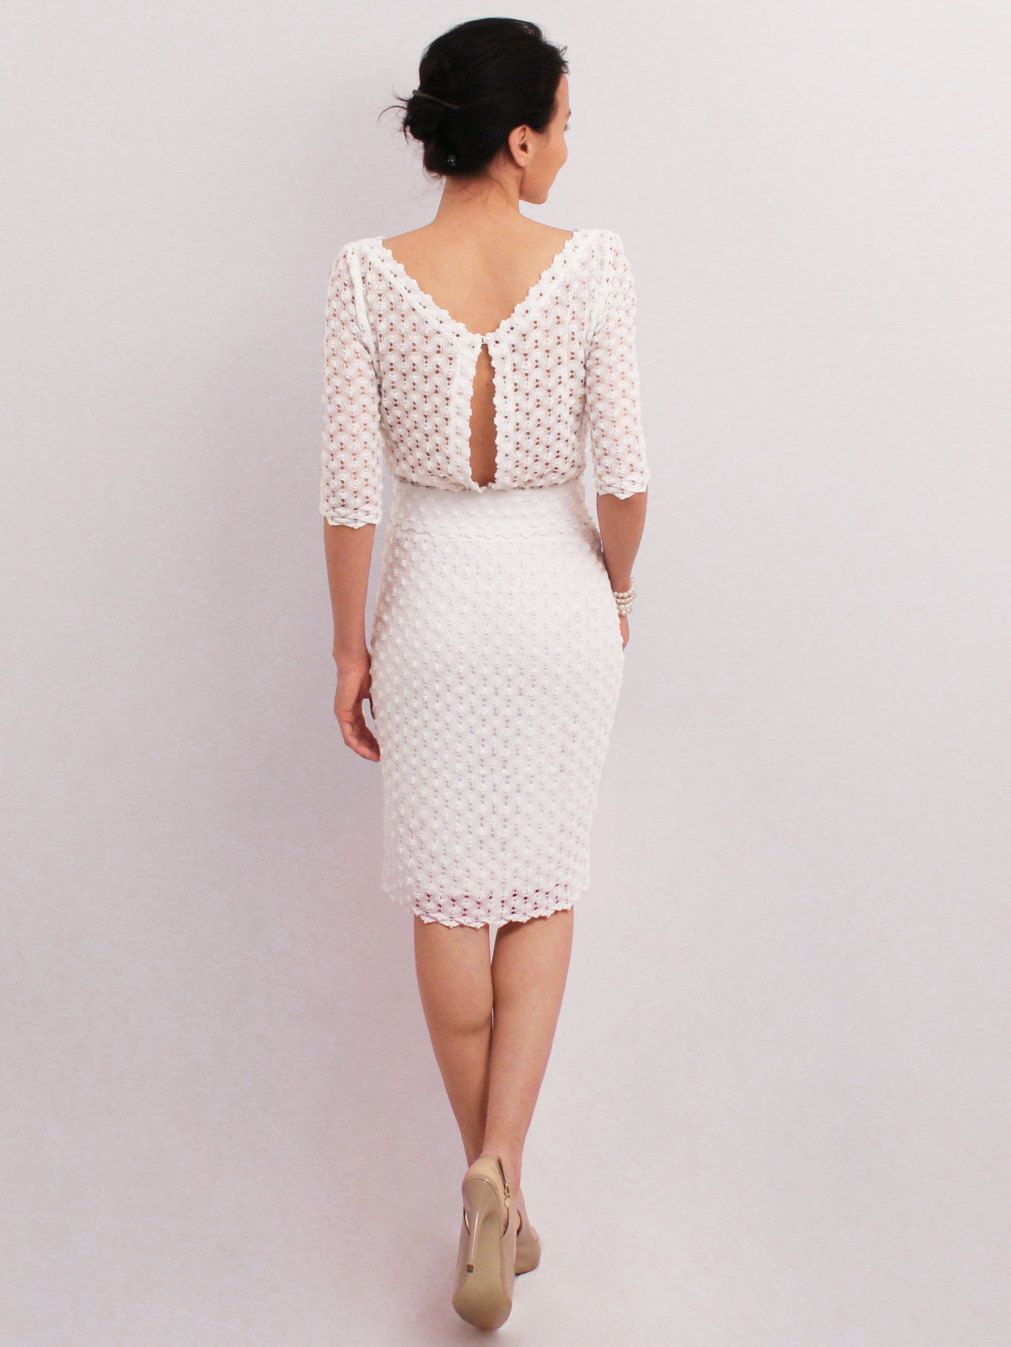 White pencil dress elegant midi dress medium sleeve knee dress